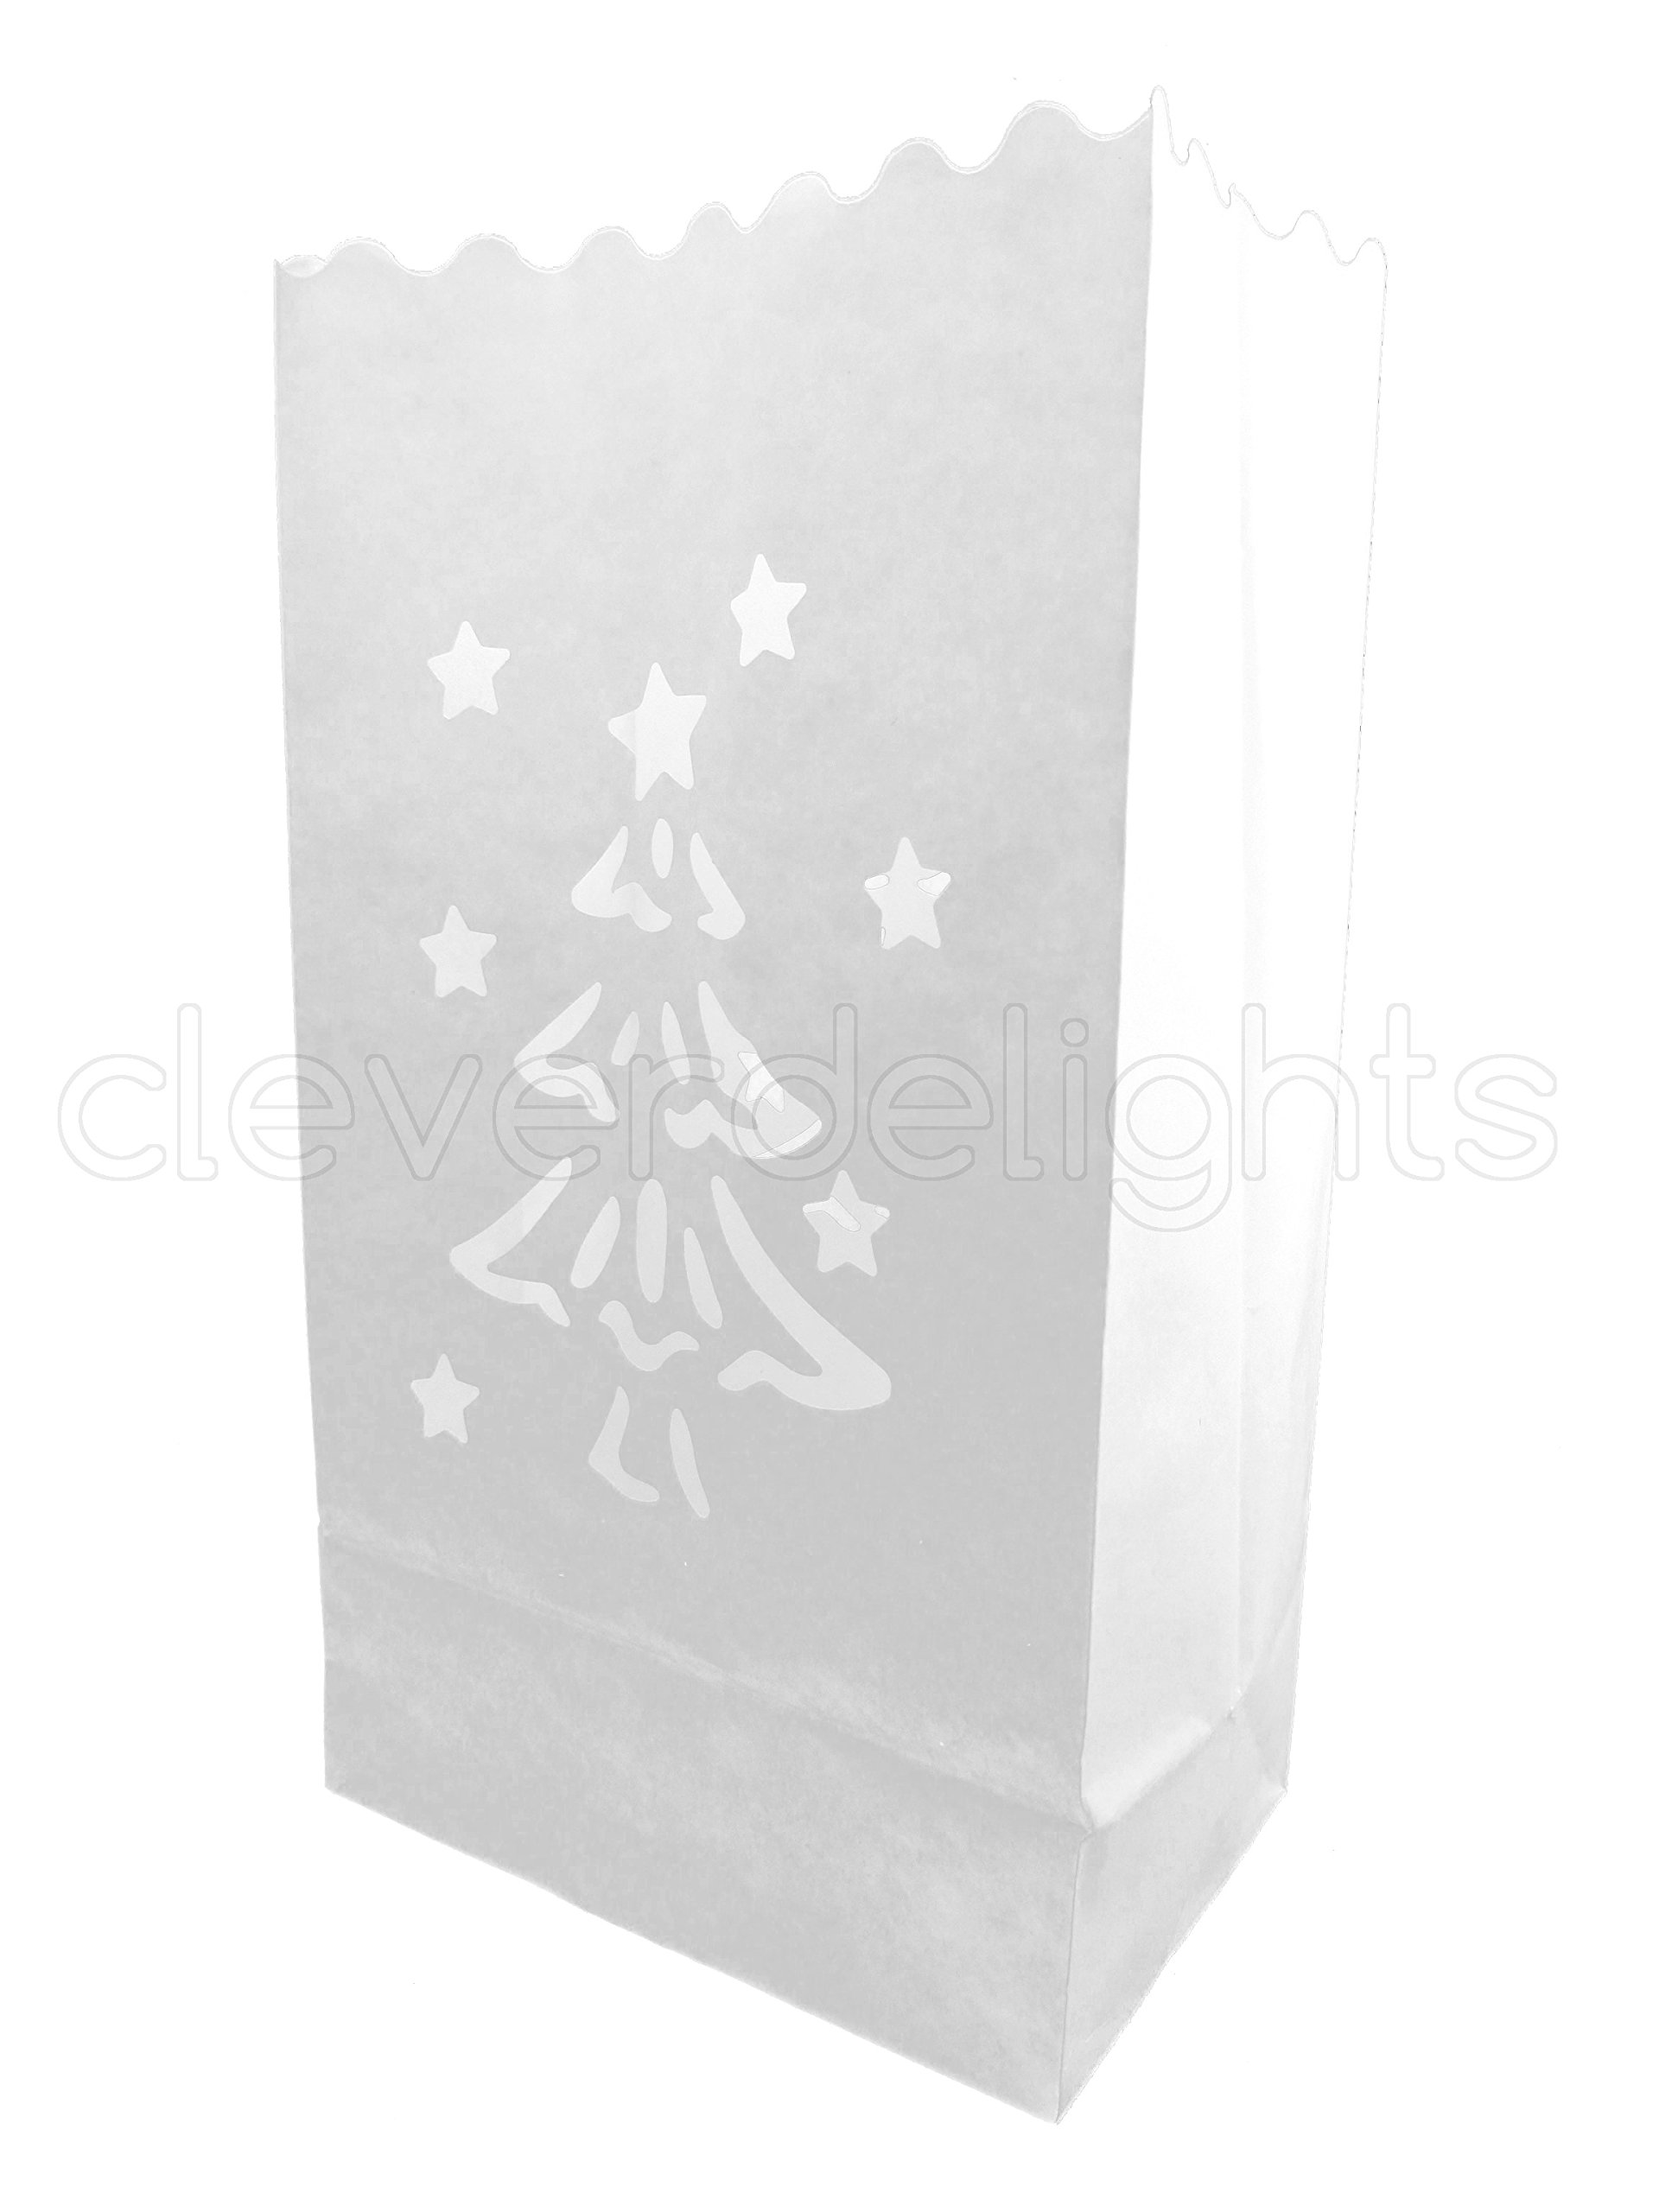 CleverDelights White Luminary Bags - 30 Count - Christmas Tree Design - Flame Resistant Paper - Christmas Holiday Outdoor Decorations - Party and Event Decor - Luminaria Candle Bag by CleverDelights